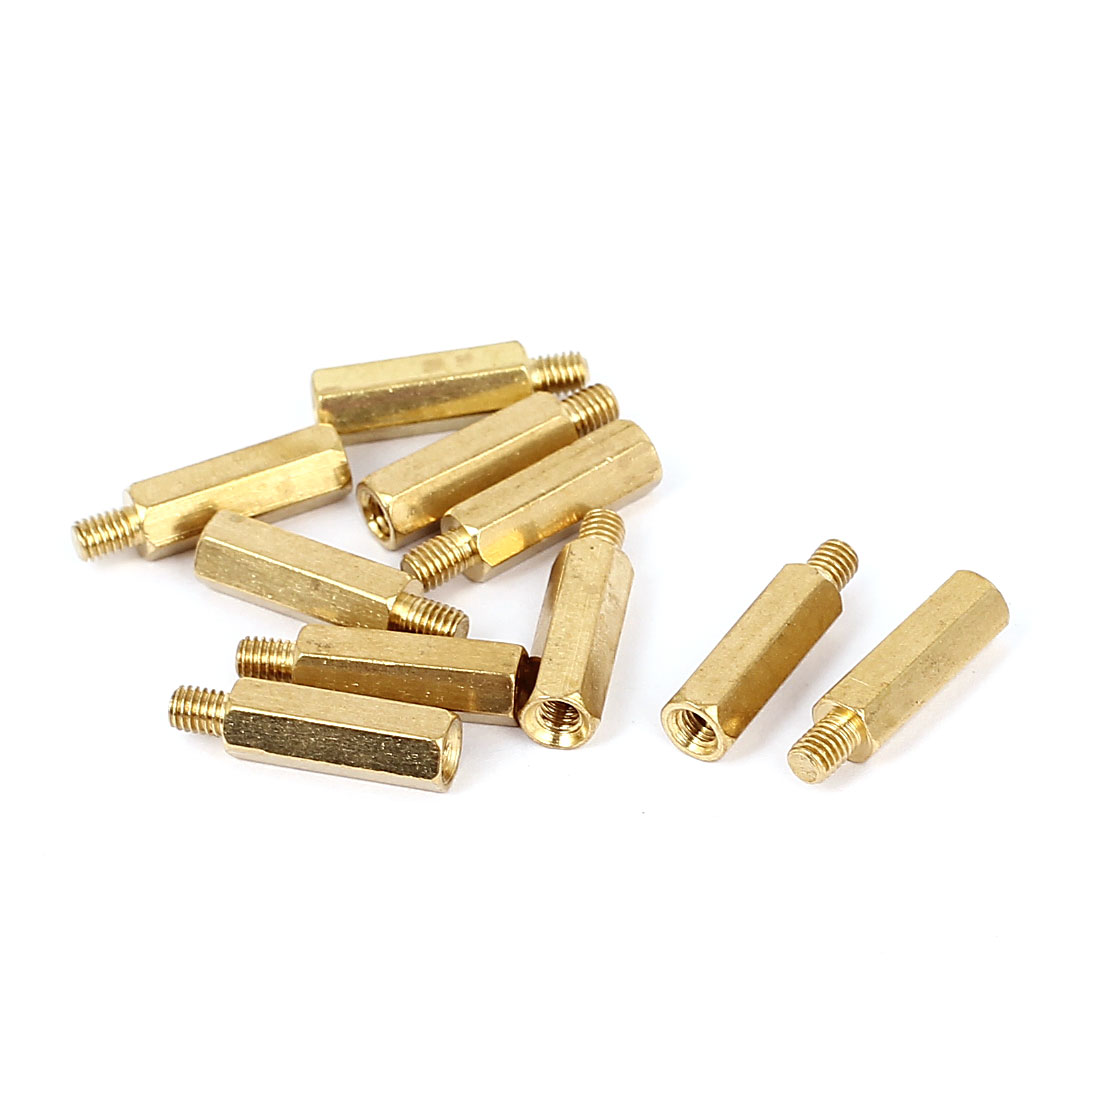 M3x14mm+4mm Male to Female Thread 0.5mm Pitch Brass Hex Standoff Spacer 10Pcs